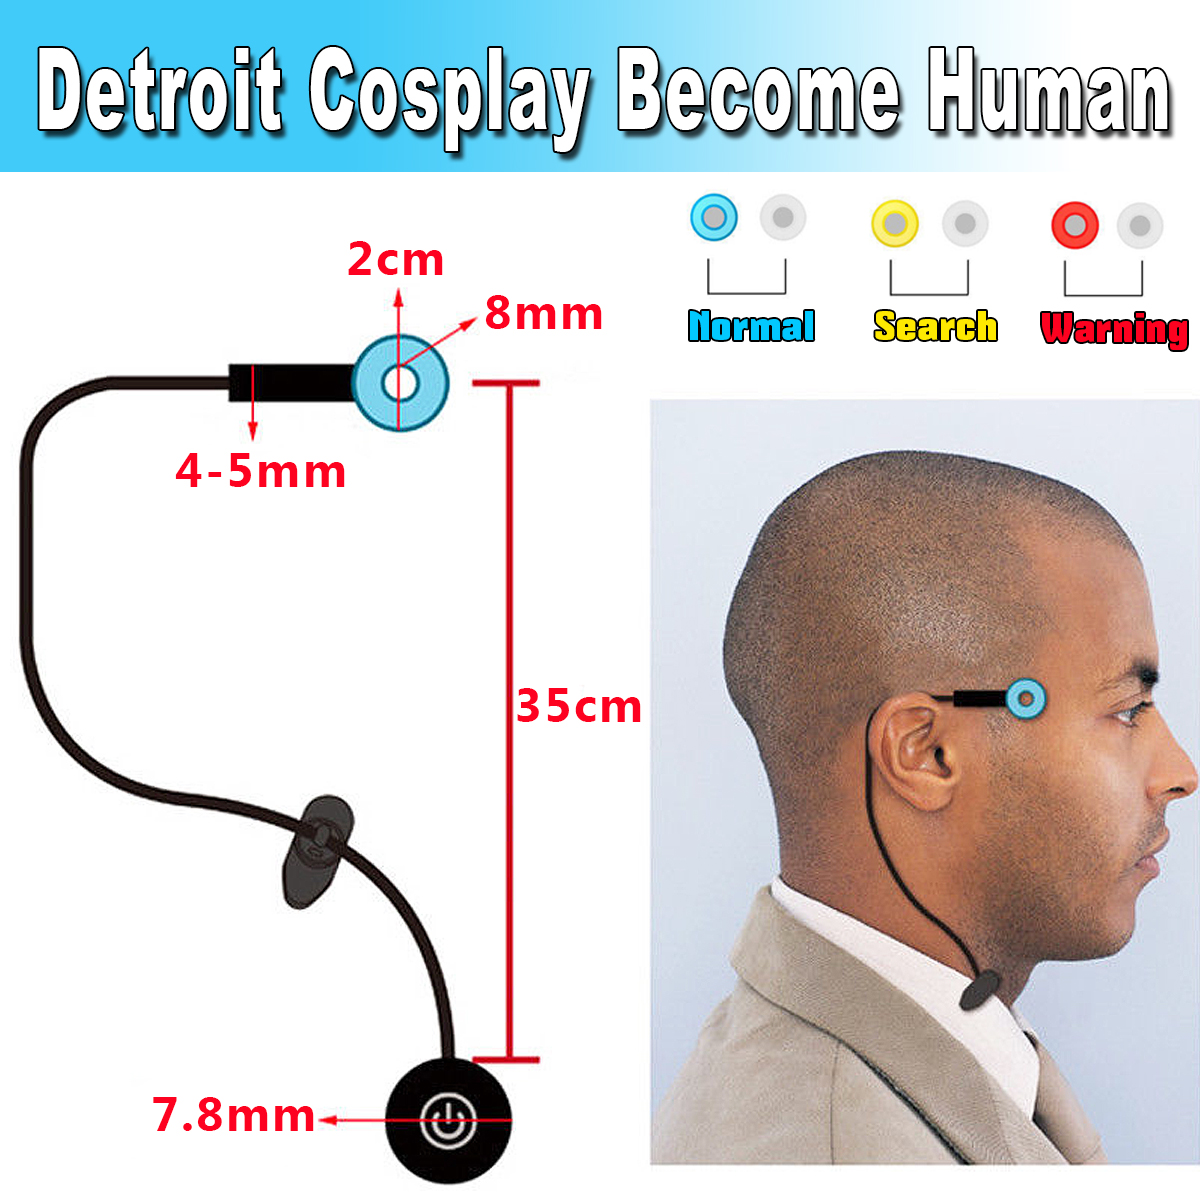 16313a80a Generic Detroit Cosplay Connor RK800 Become Human Temple Head LED ...